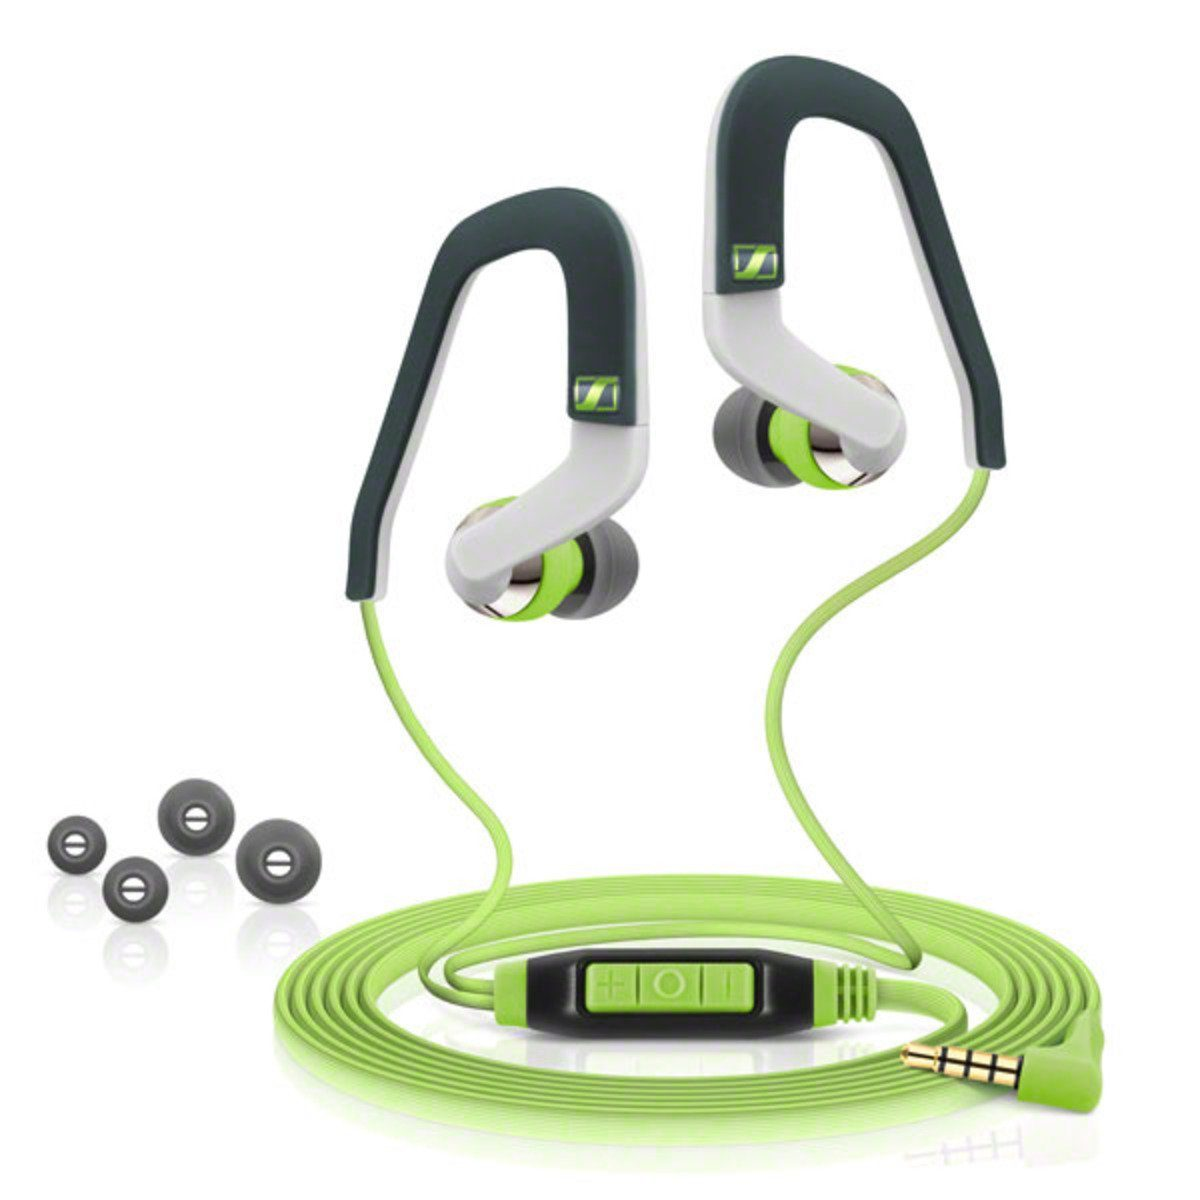 Sennheiser Headset »OCX 686 G Sports«